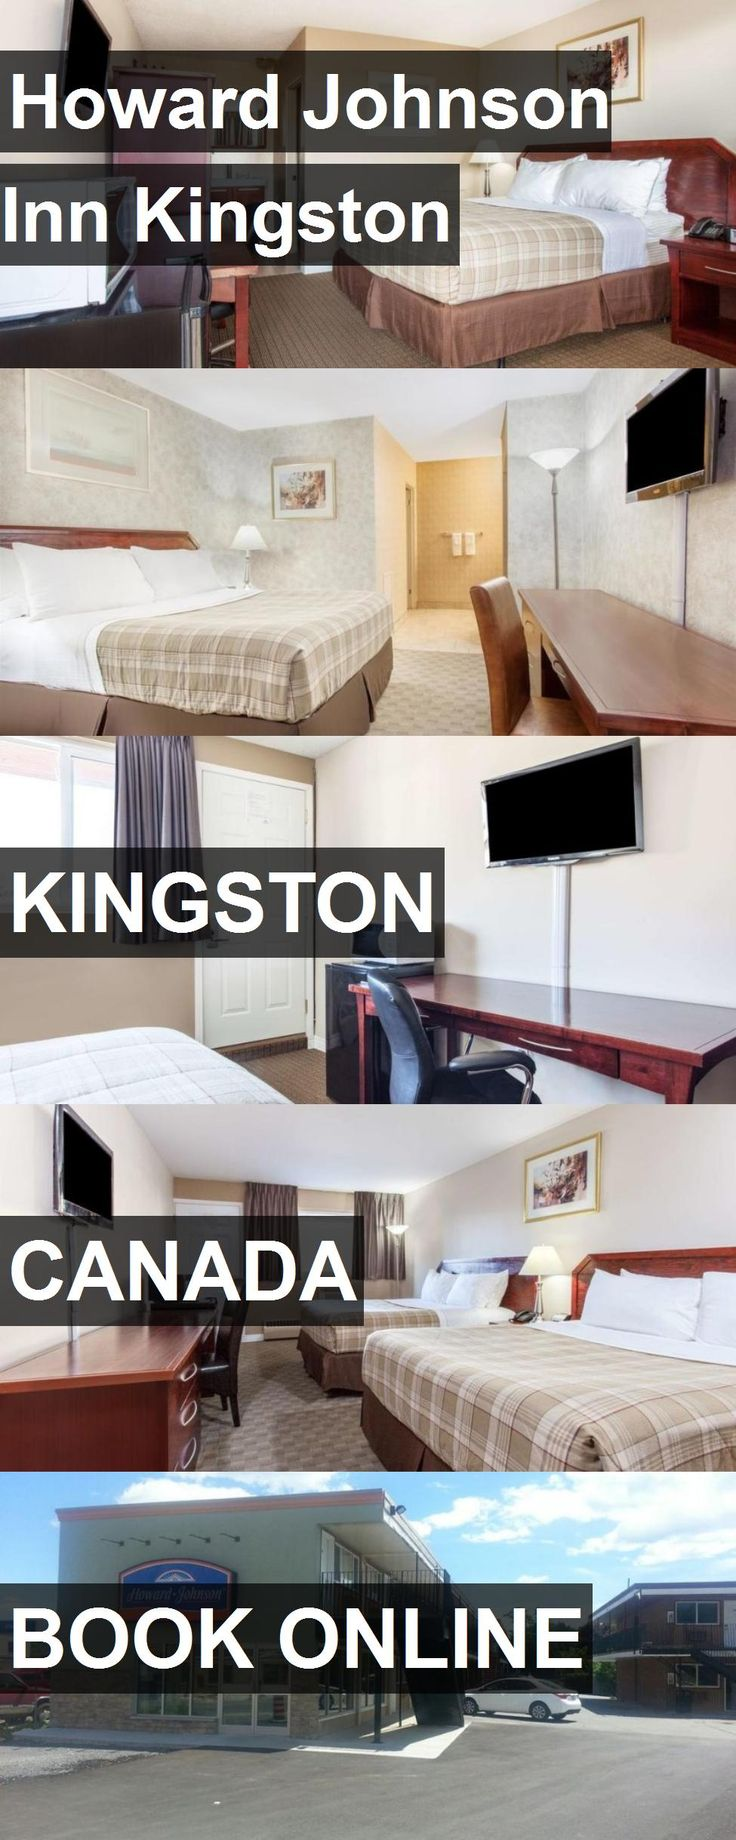 Hotel Howard Johnson Inn Kingston in Kingston, Canada. For more information, photos, reviews and best prices please follow the link. #Canada #Kingston #HowardJohnsonInnKingston #hotel #travel #vacation